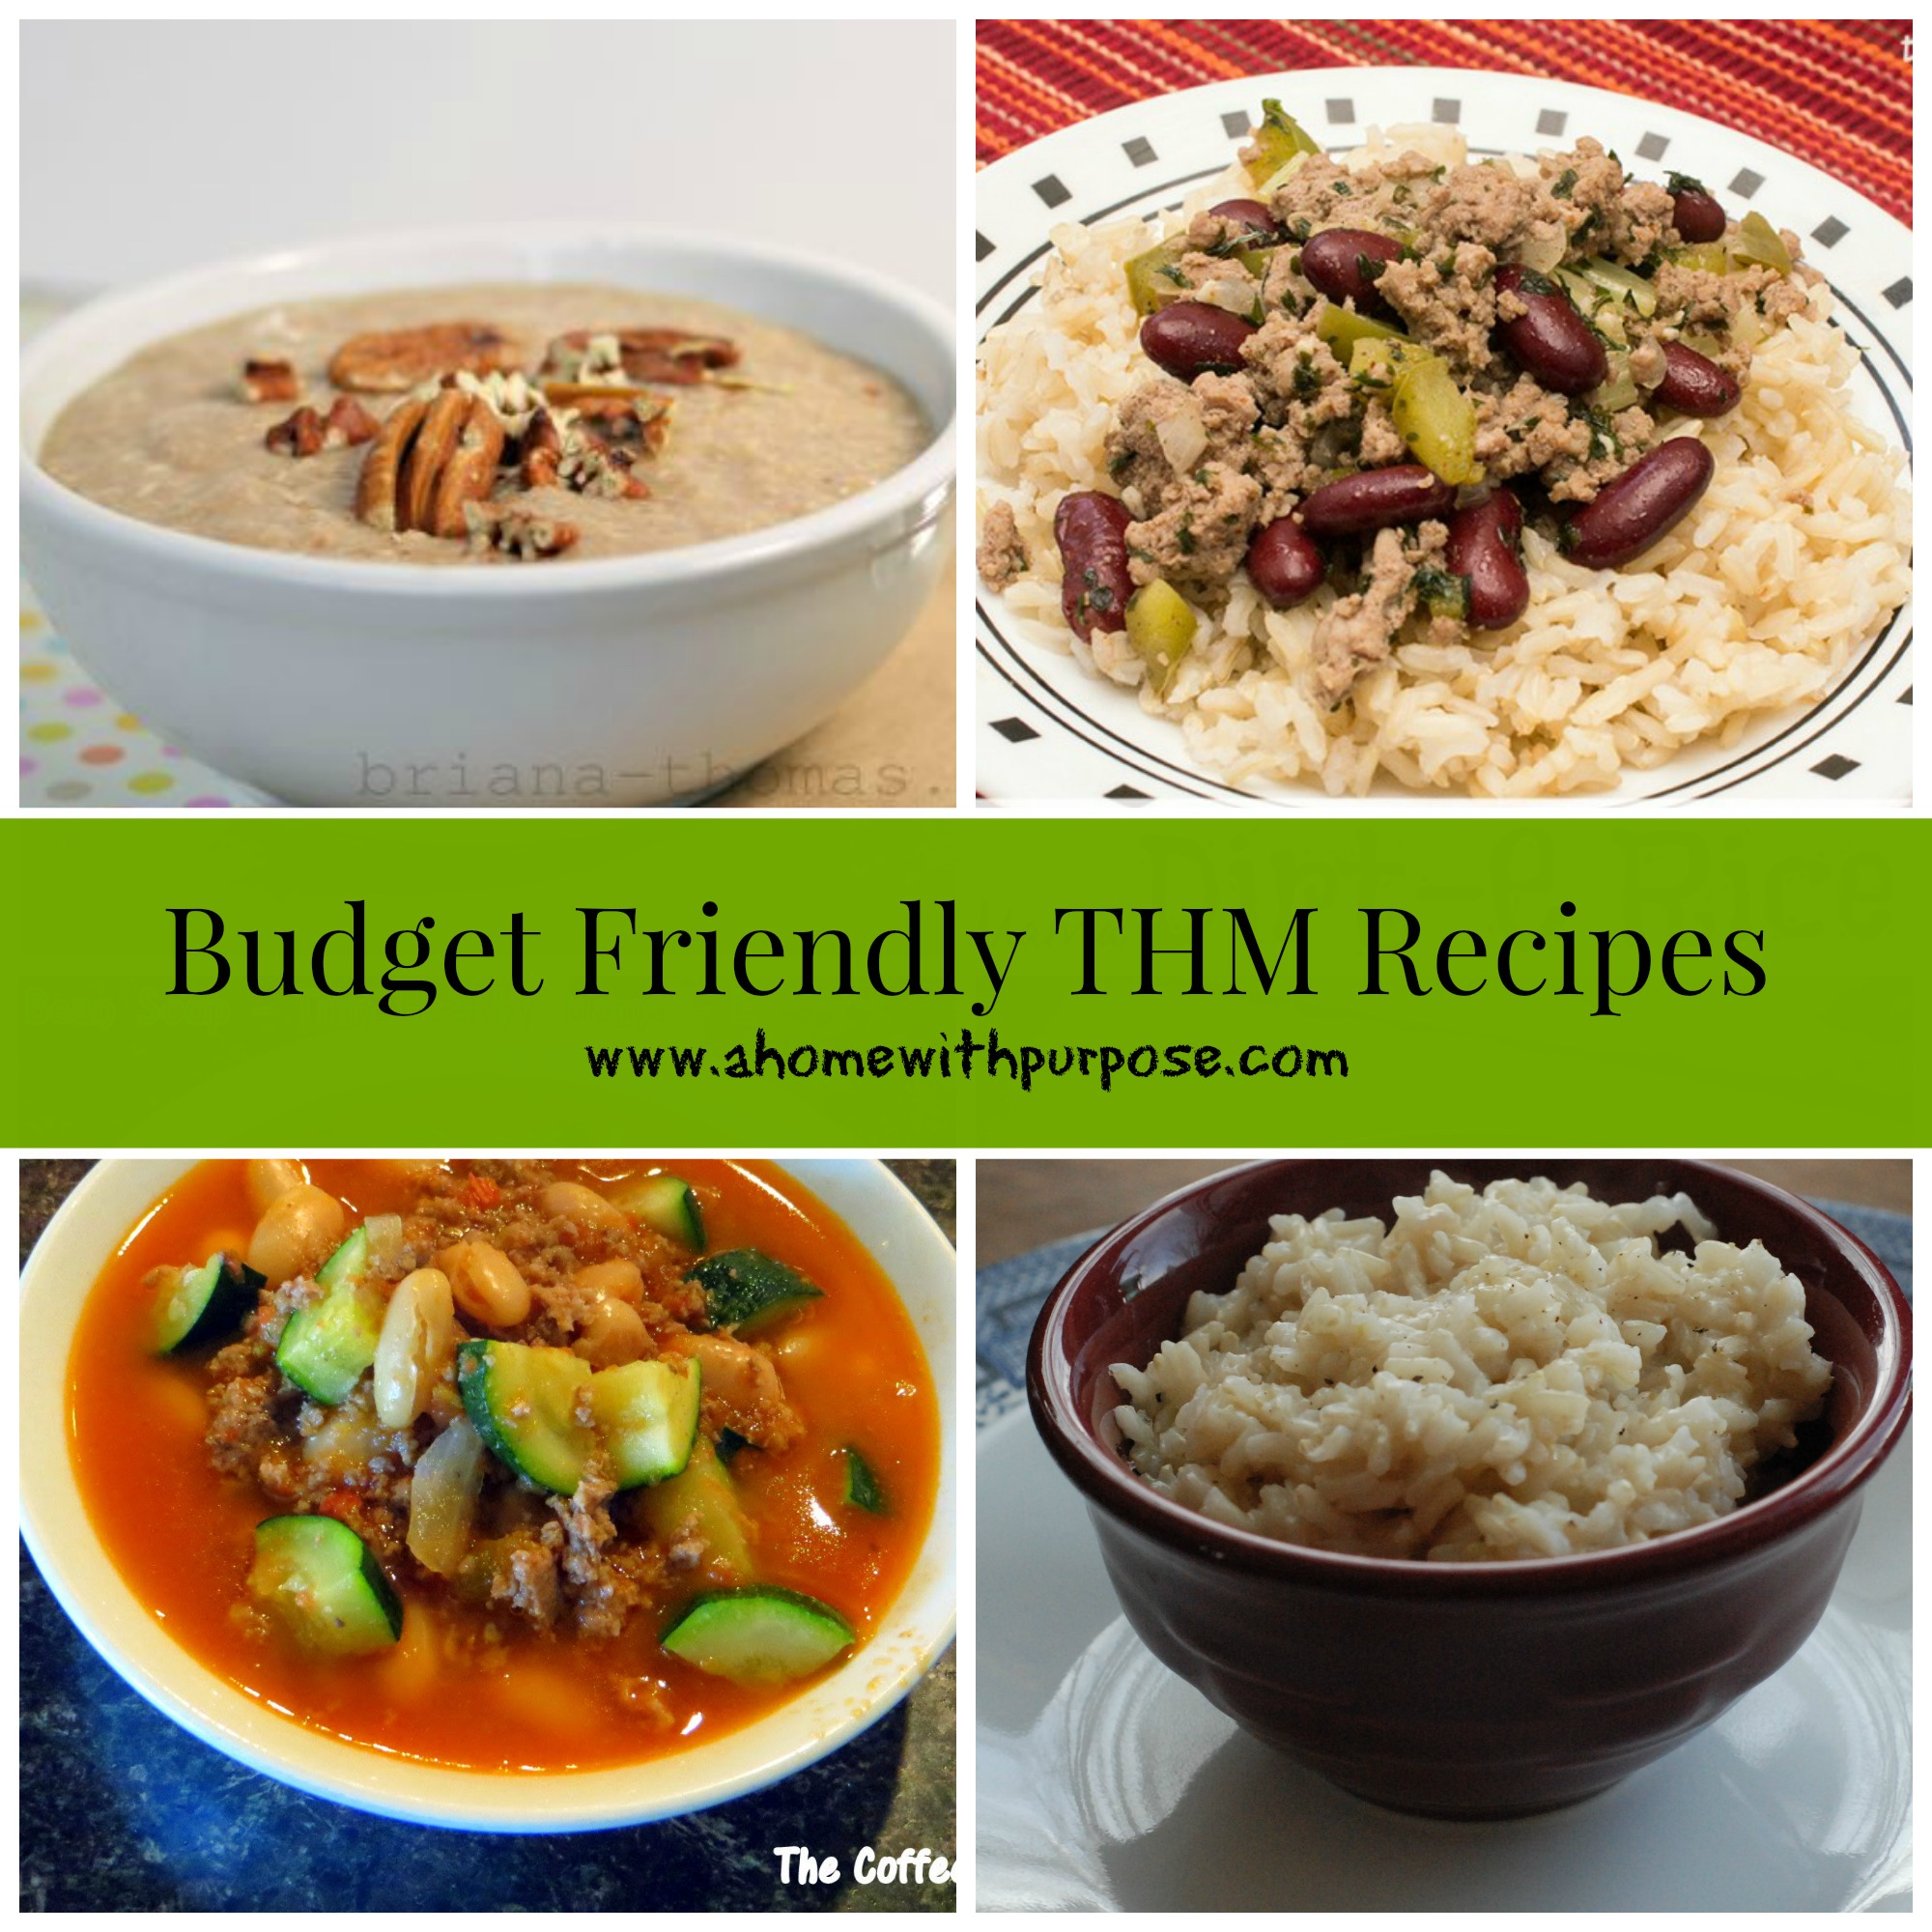 Budget friendly thm recipes a home with purpose budgetfriendlythm forumfinder Gallery